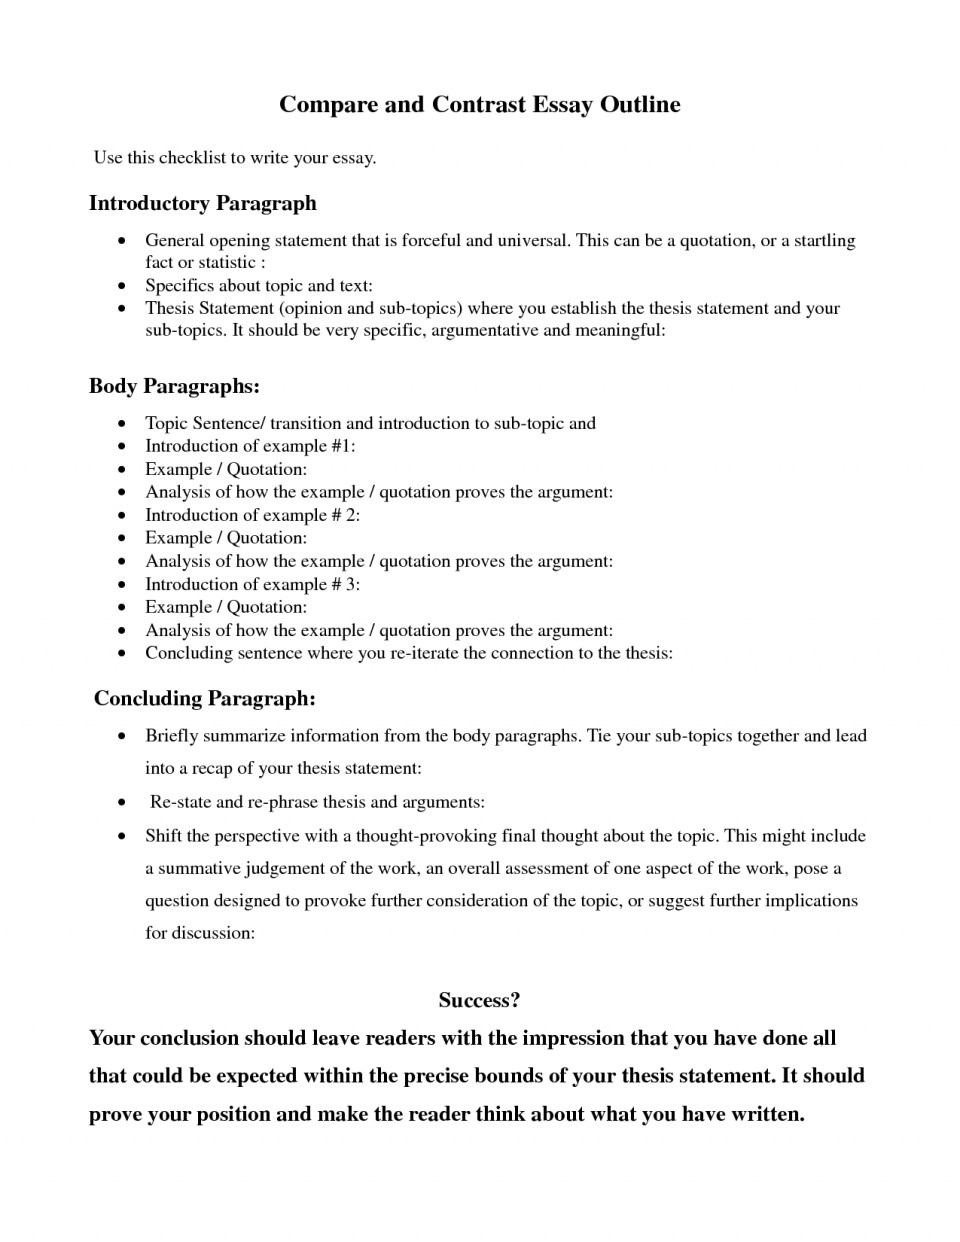 how to write comparison essay for high school